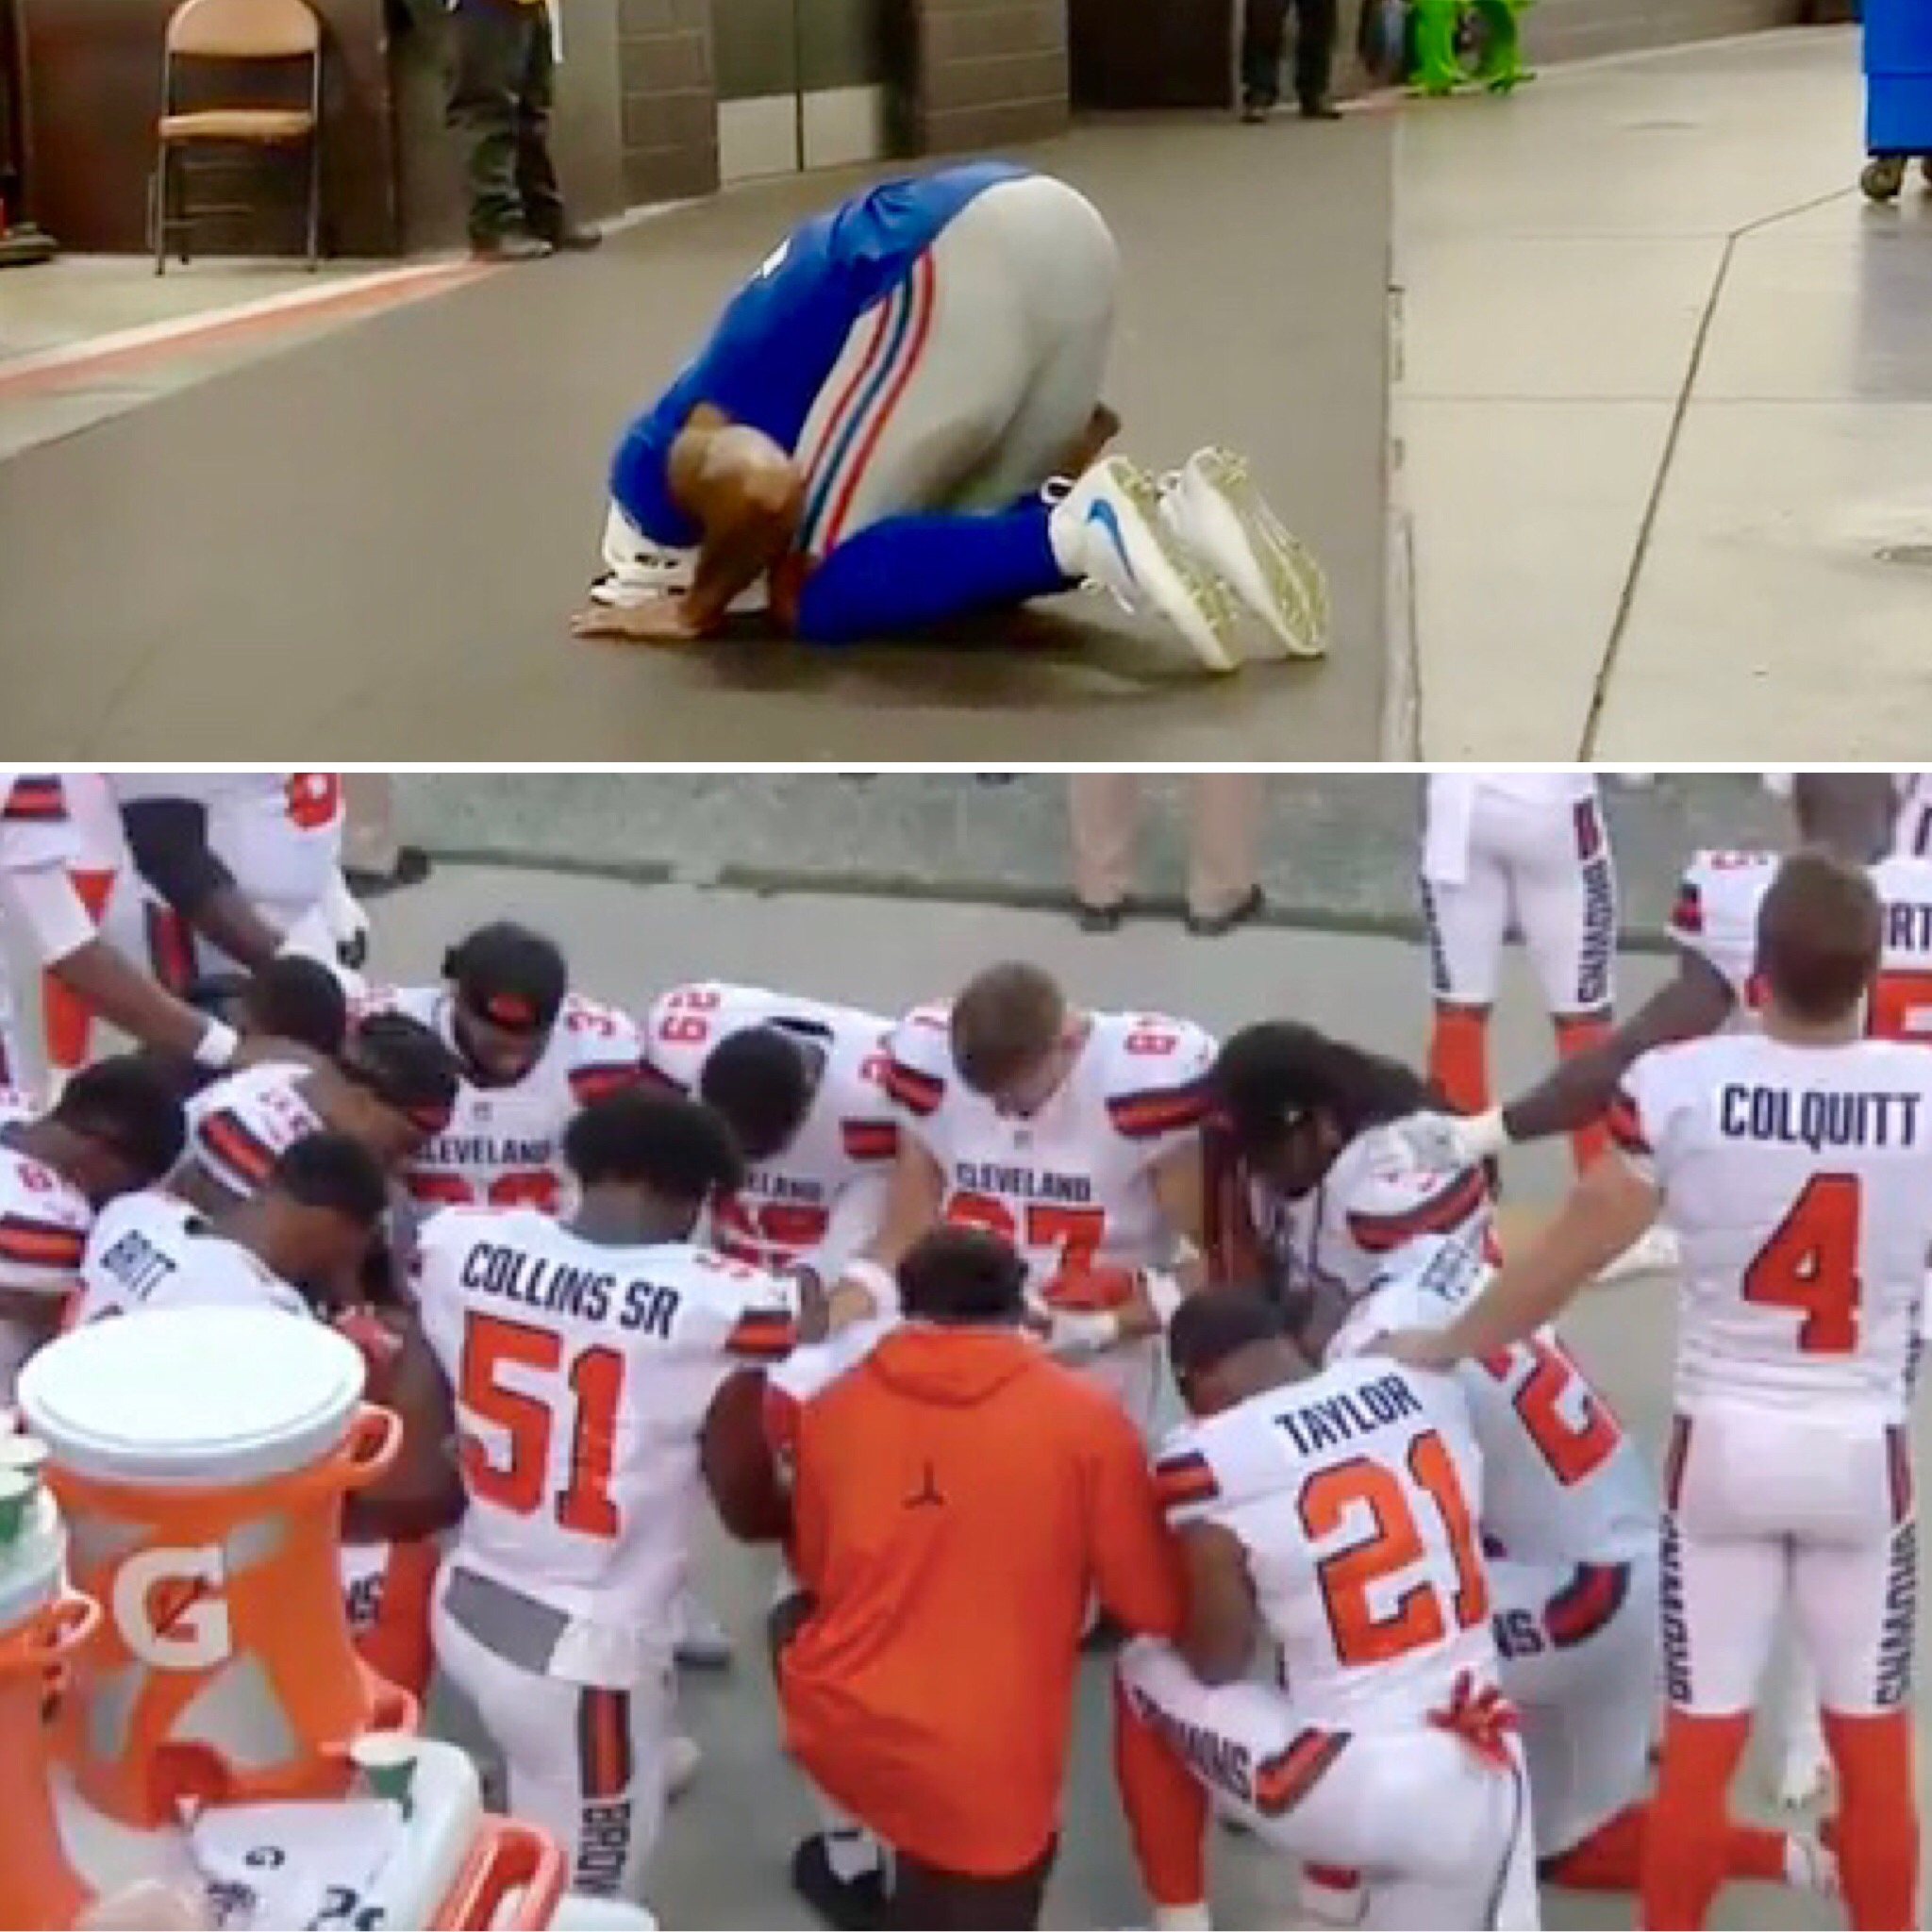 Brownsgiants cleveland players take knee during anthem odell brownsgiants cleveland players take knee during anthem odell beckham jr injured m4hsunfo